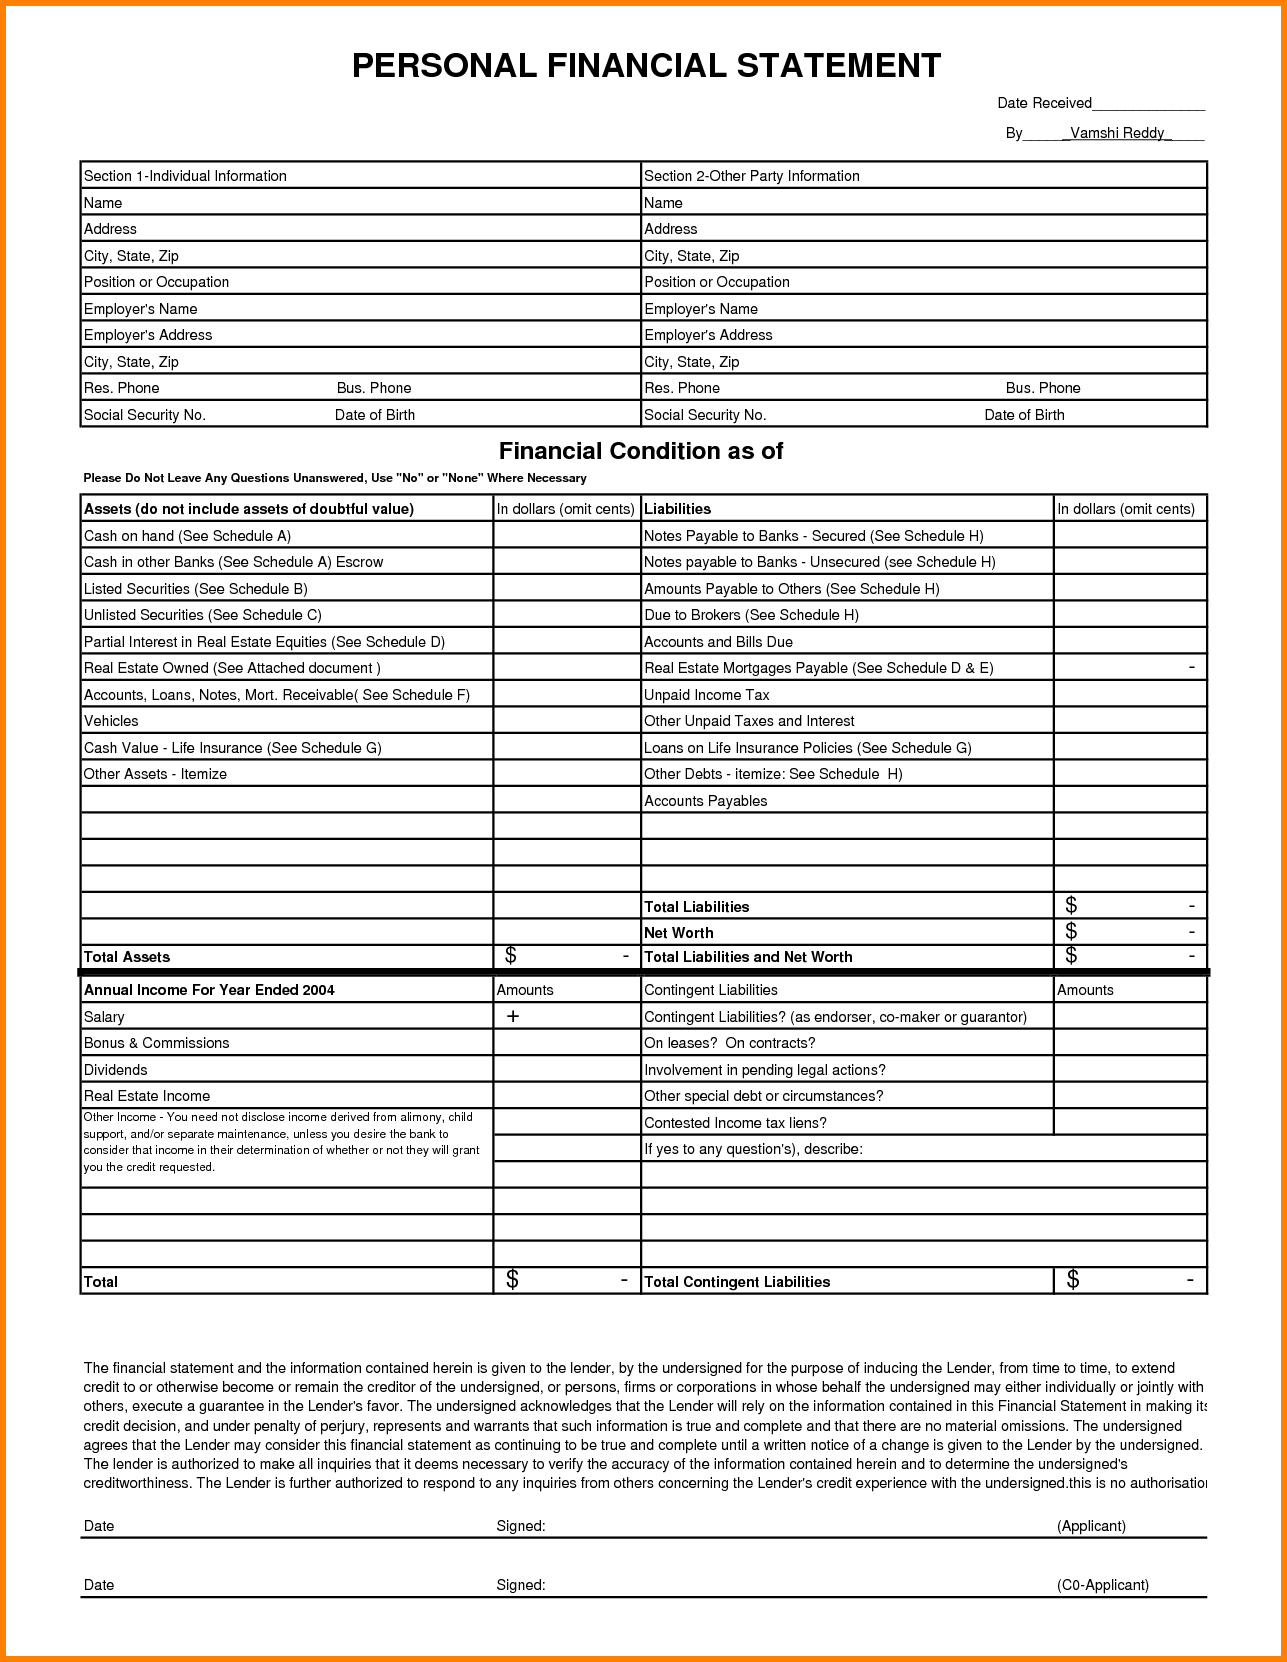 Personal Financial Statement Spreadsheet Inside Individual